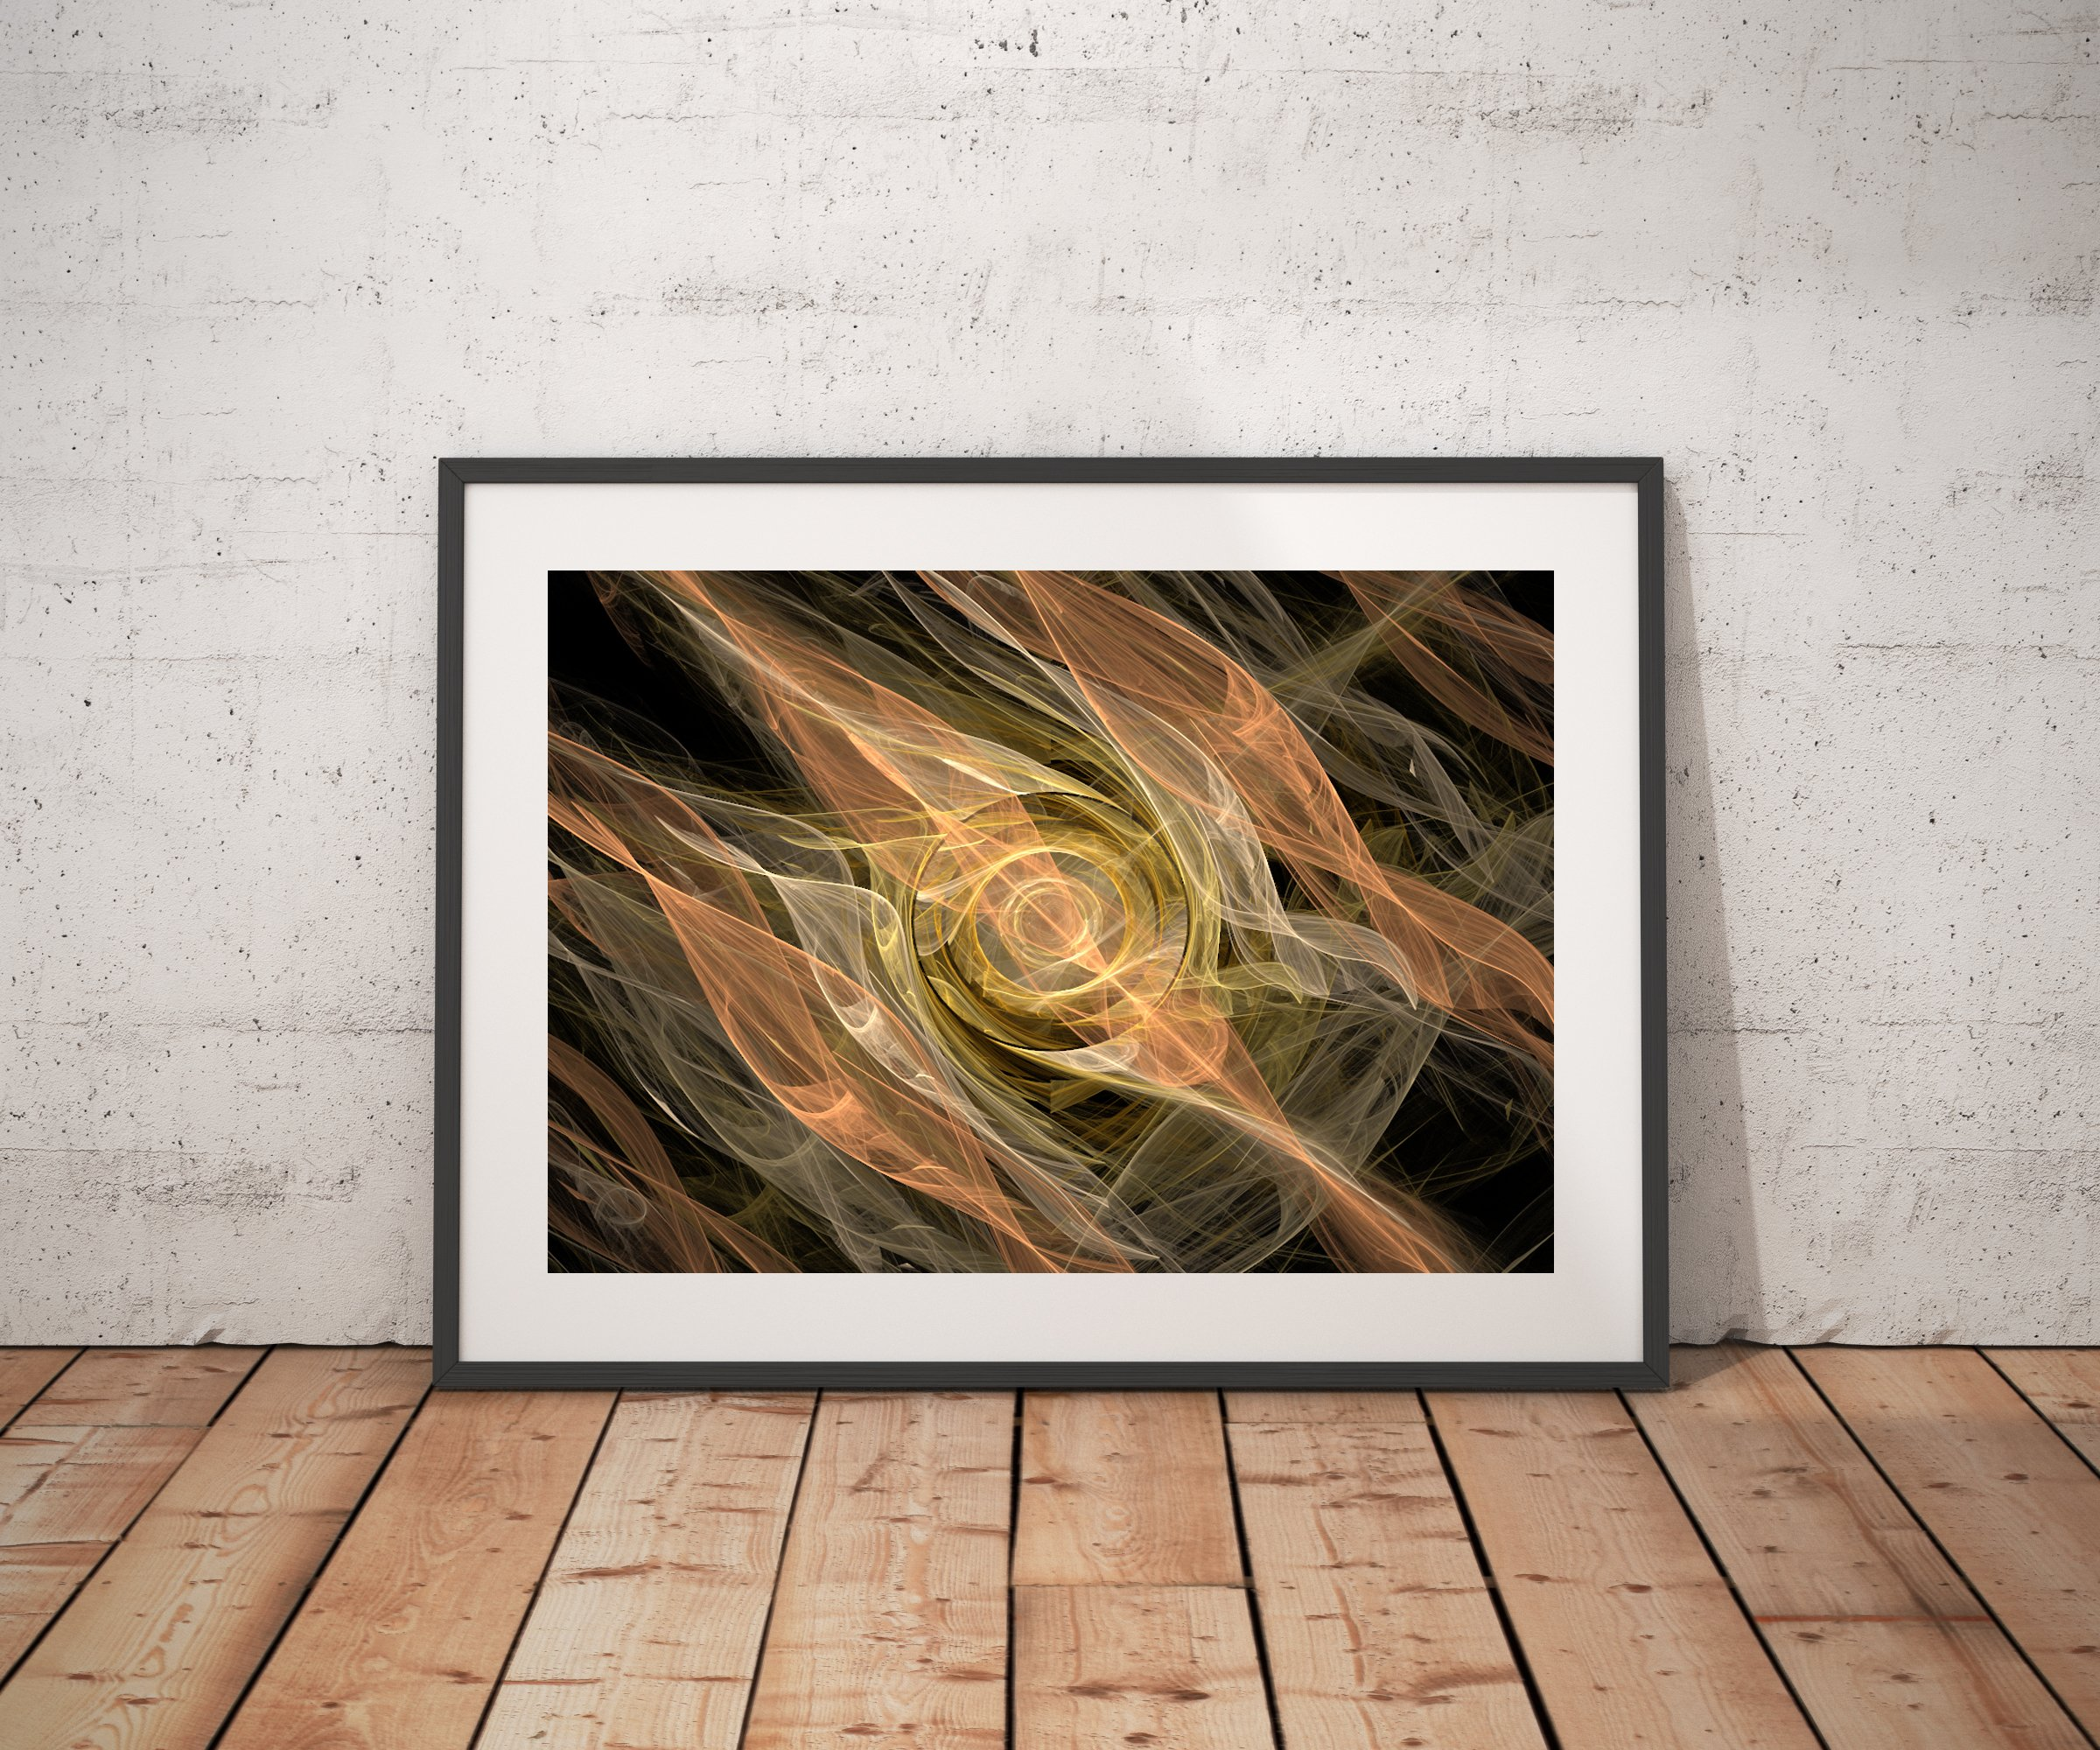 The Flames Abstract digital art